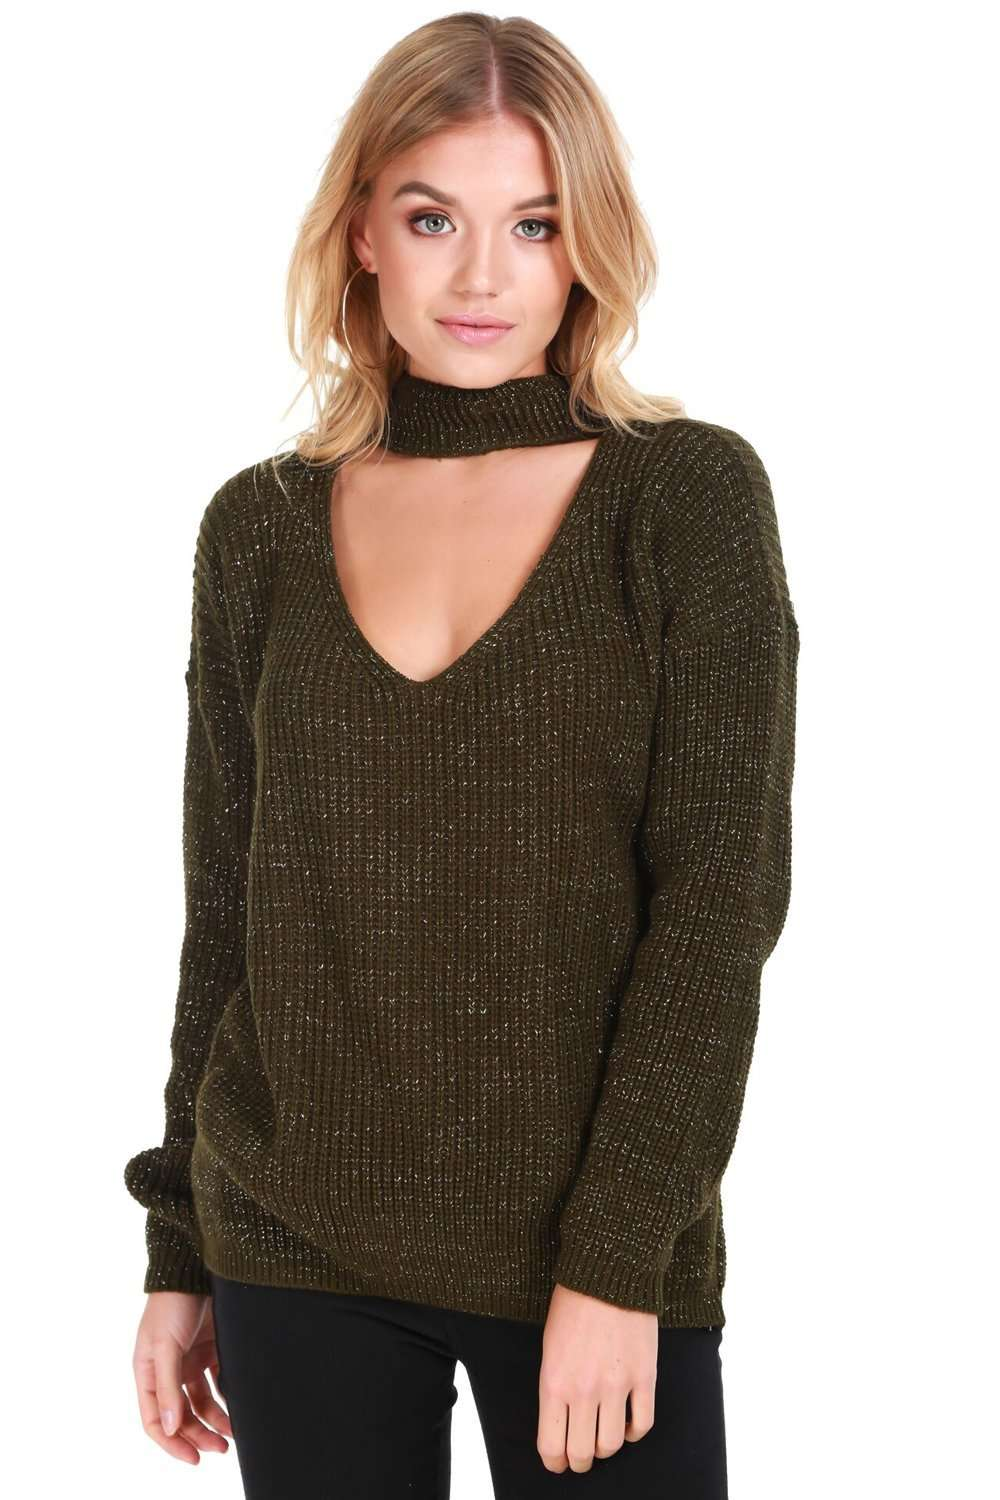 Sufiyah Choker Neck Oversized Knitted Jumper - bejealous-com